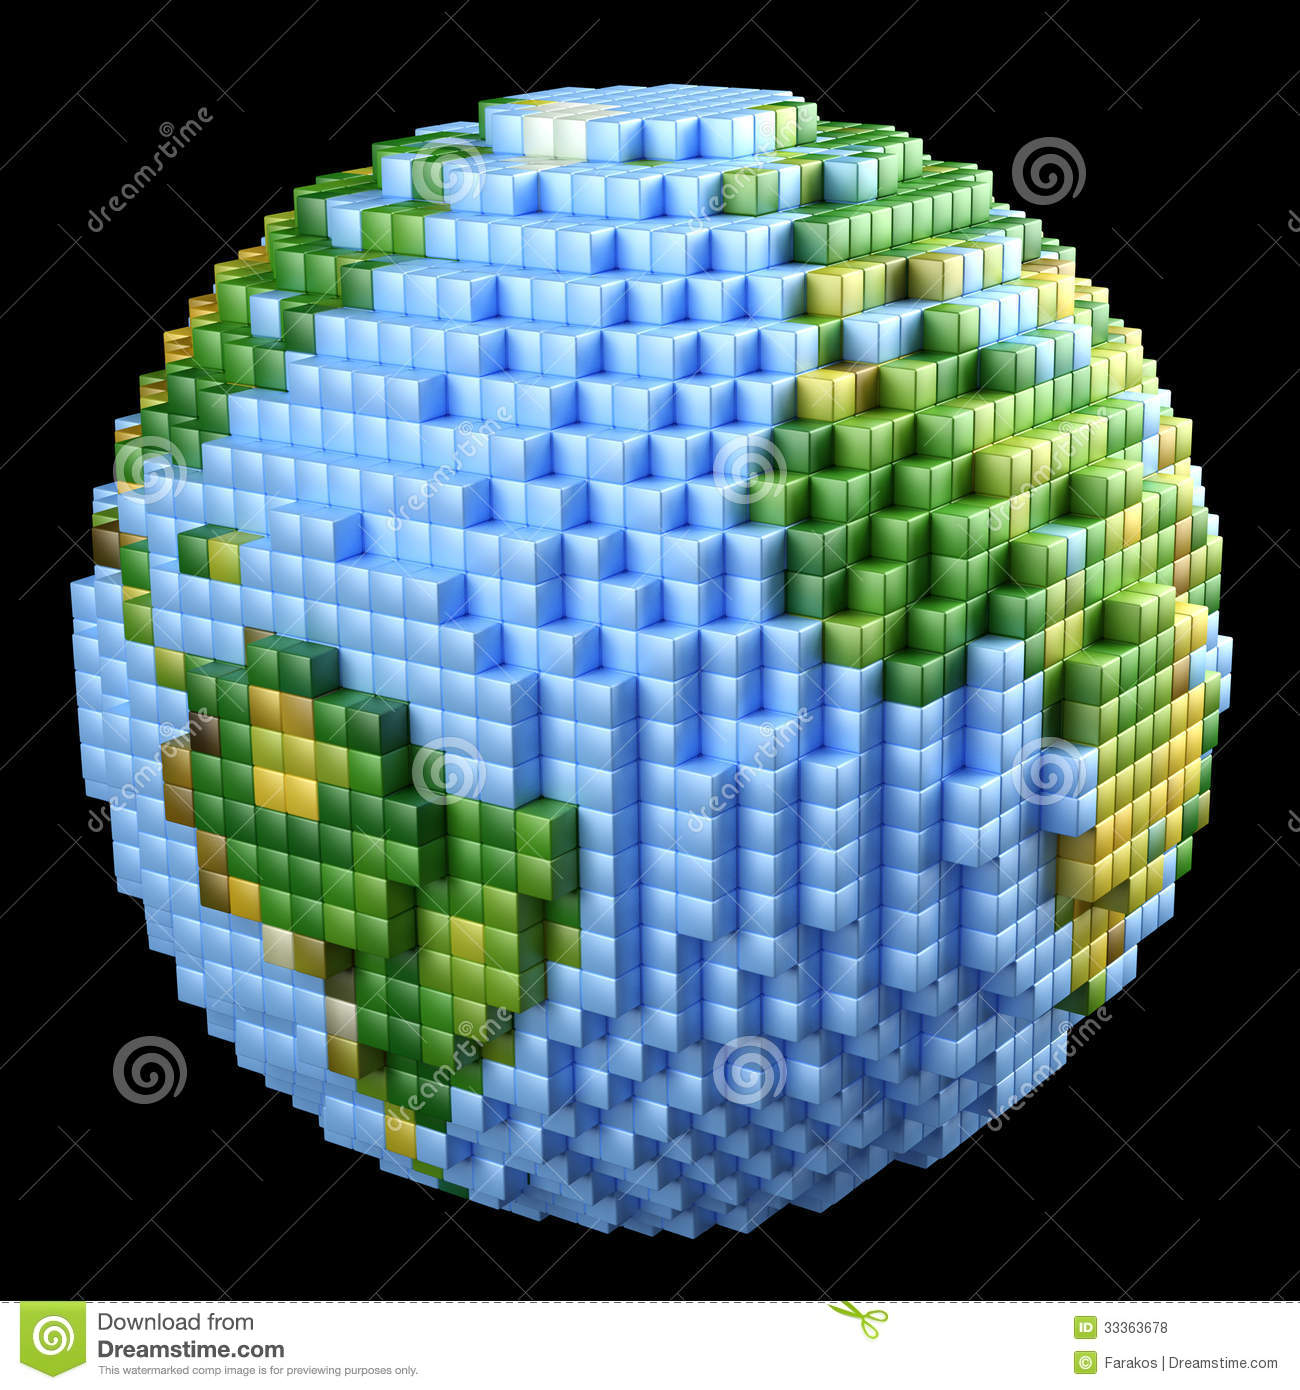 3d World Globe Wallpaper Pixelated Earth Concept Royalty Free Stock Photos Image